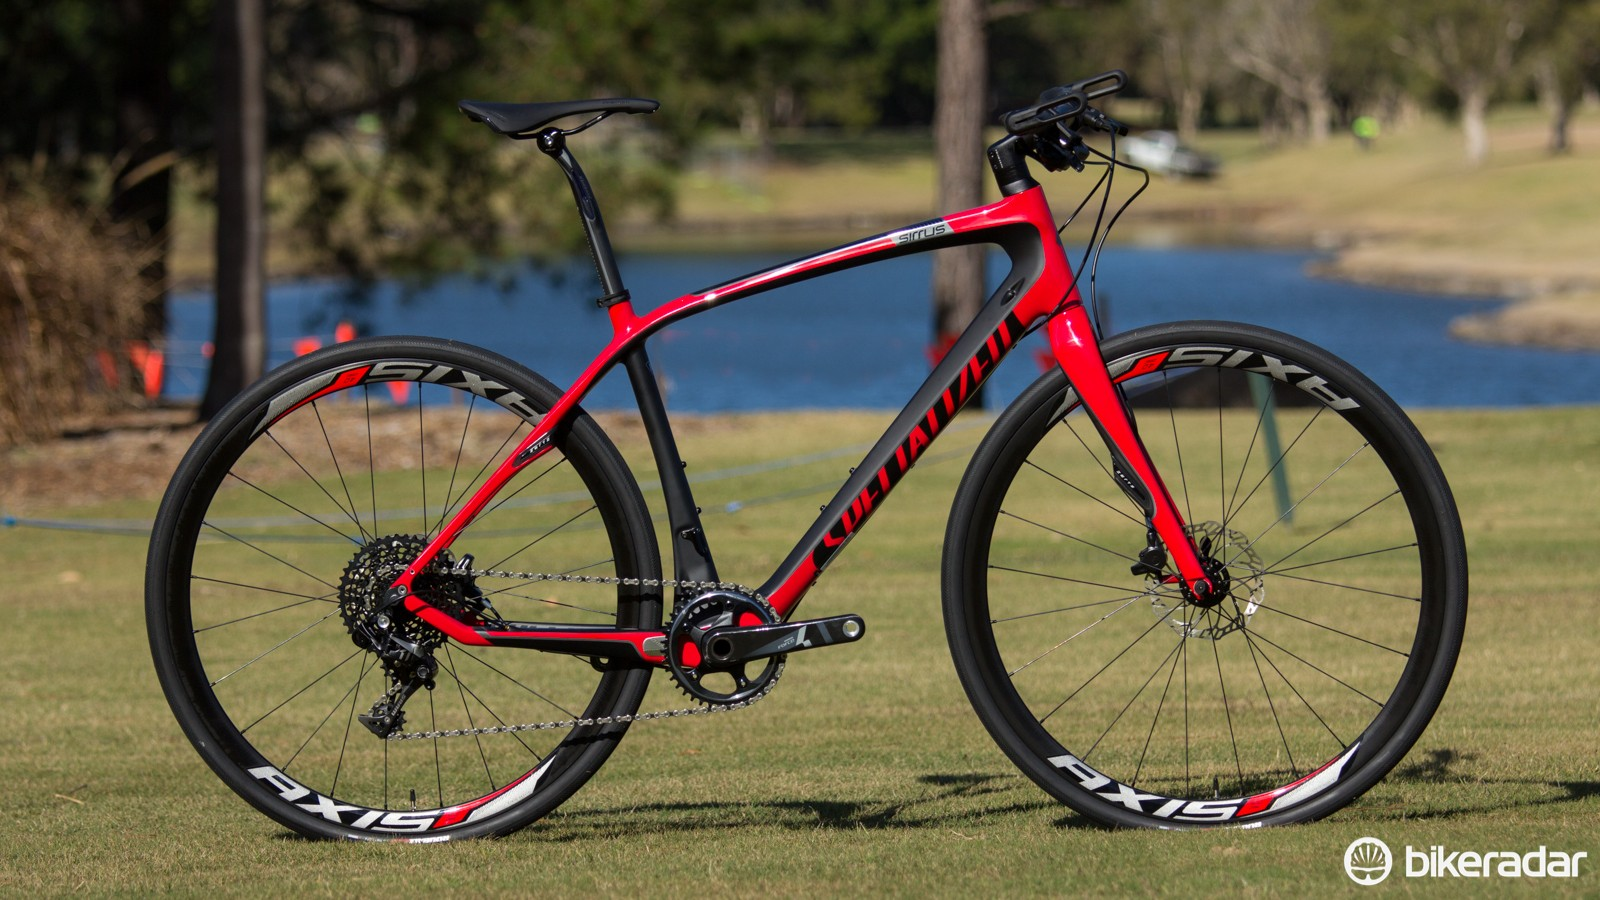 The Specialized Sirrus Pro Carbon Disc (US$TBC / AU$3,299 / £TBC) - all Sirrus Carbon models have a totally new frame for 2015